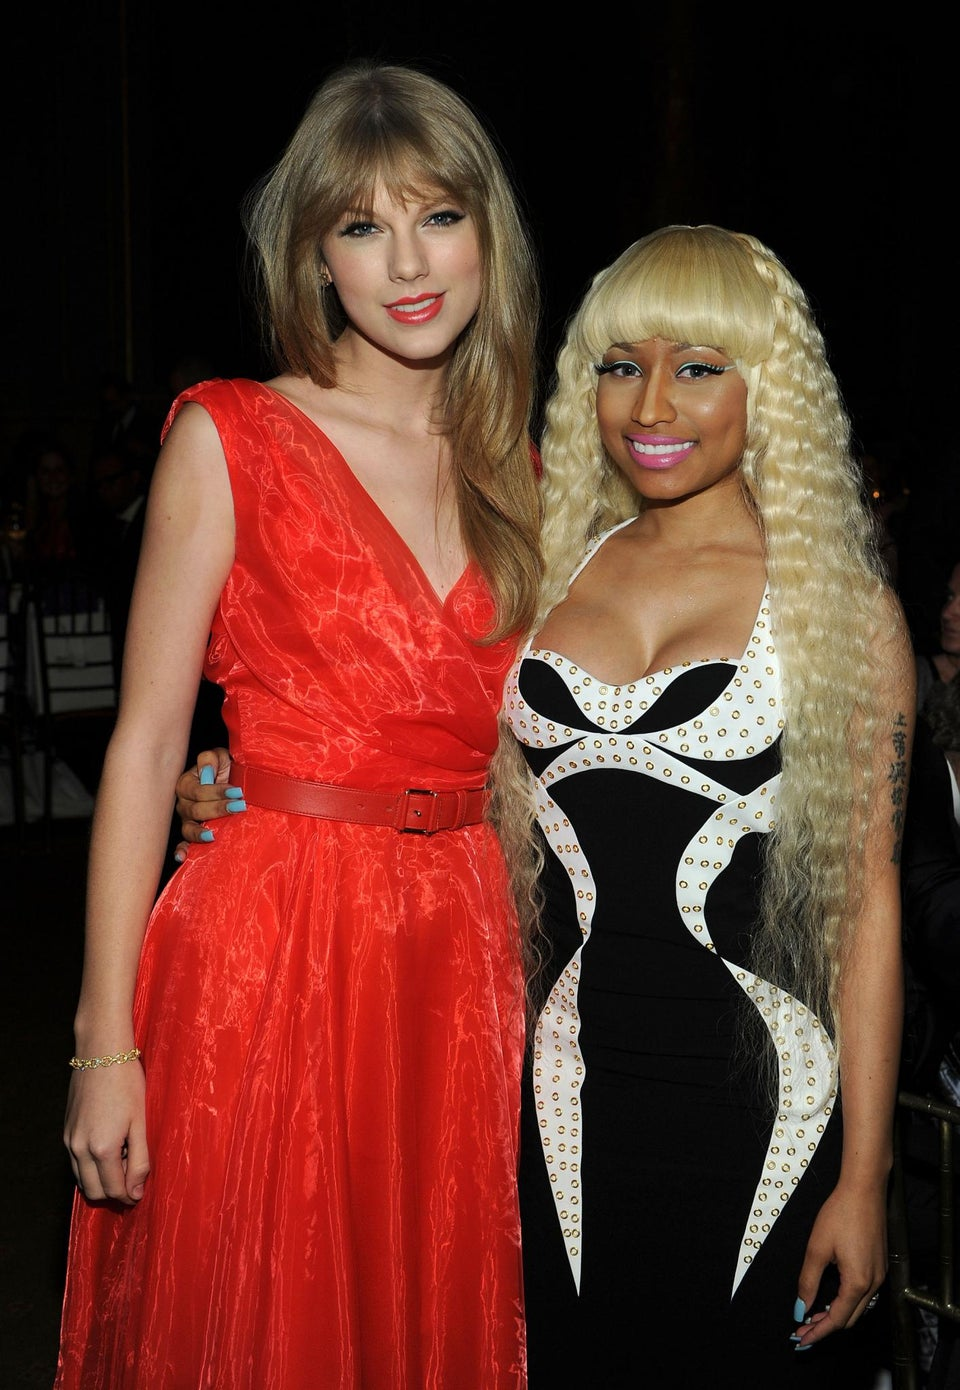 There's No More Drama Between Nicki Minaj and Taylor Swift: 'We Spoke, It's Over'